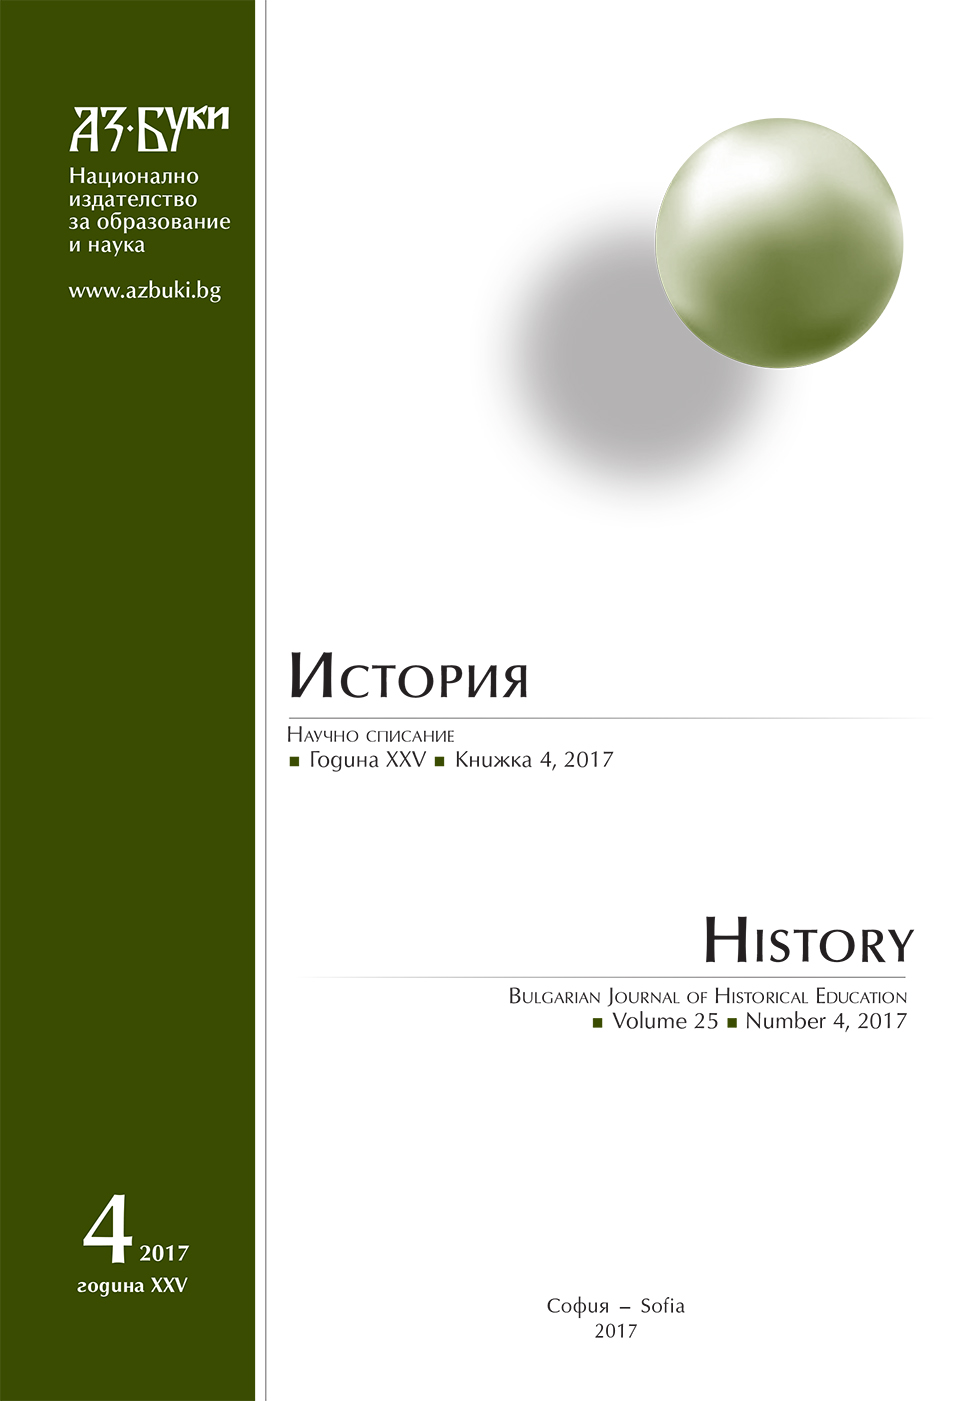 New Book Presenting the Documentary Heritage of the Holy Metropolitanate of Tarnovo Cover Image